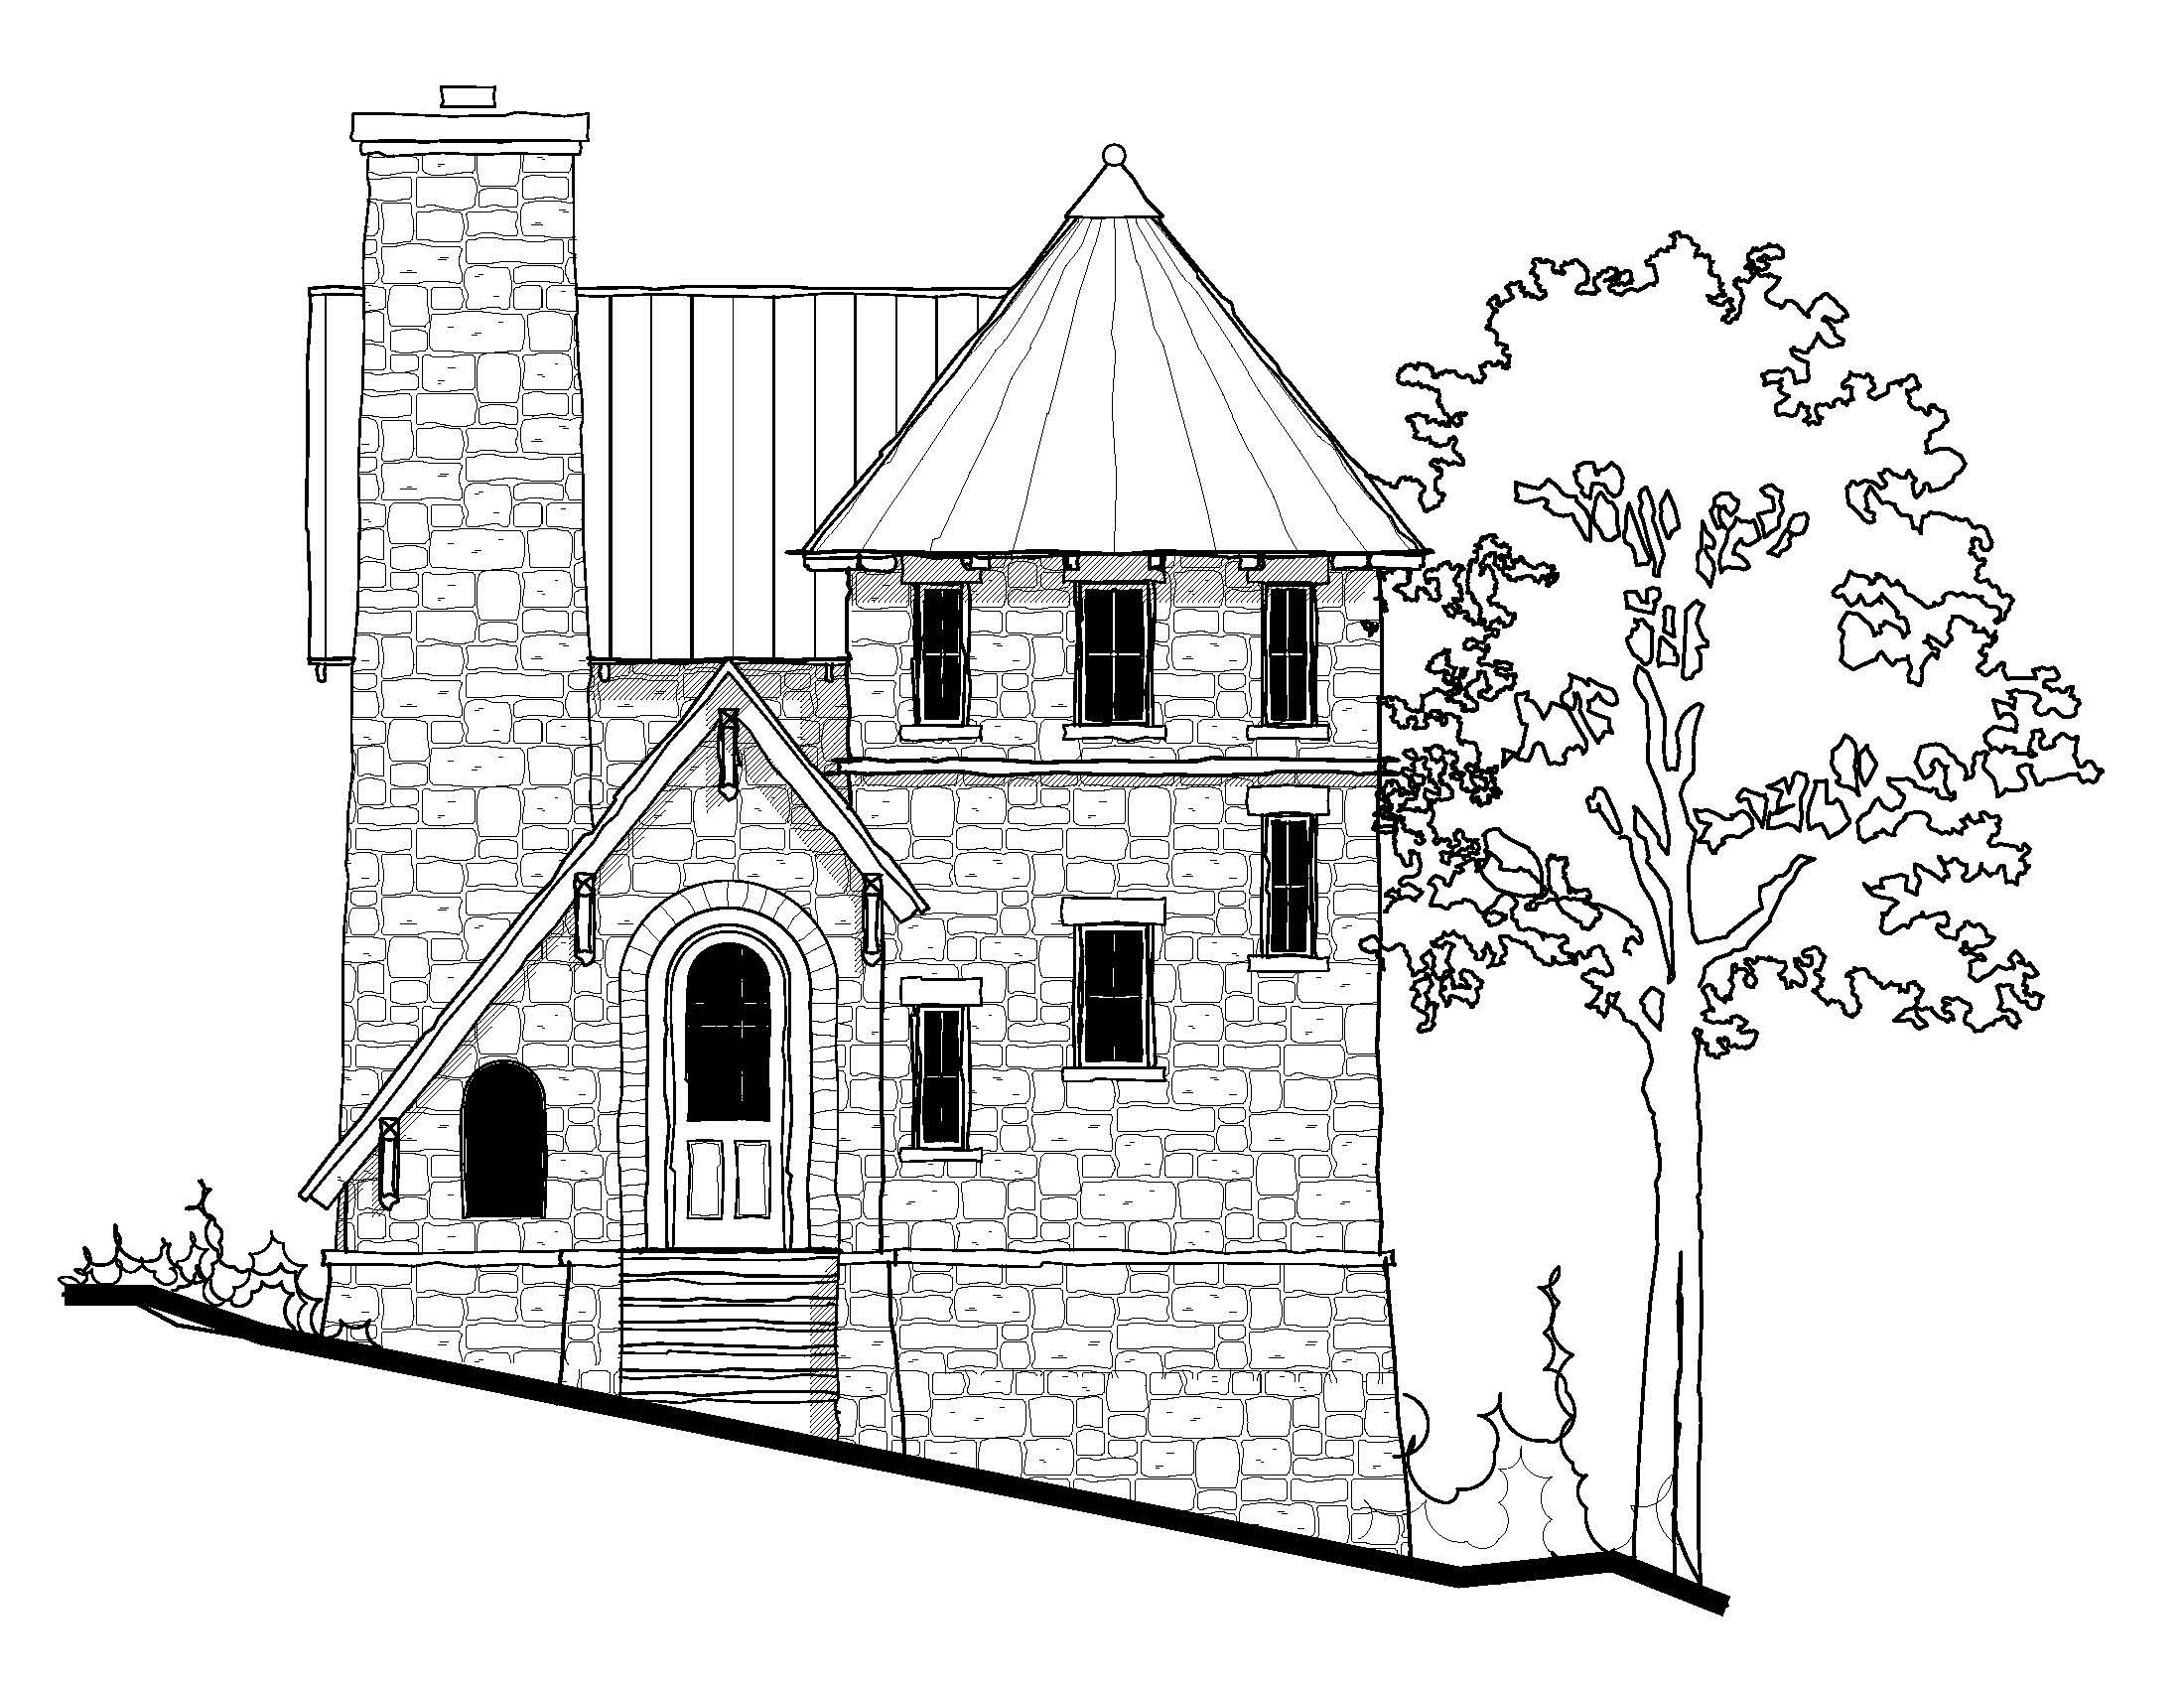 Tiny Castle 698 Sq Ft Castle House Plans Tiny House Plans Small Cottages Castle Floor Plan